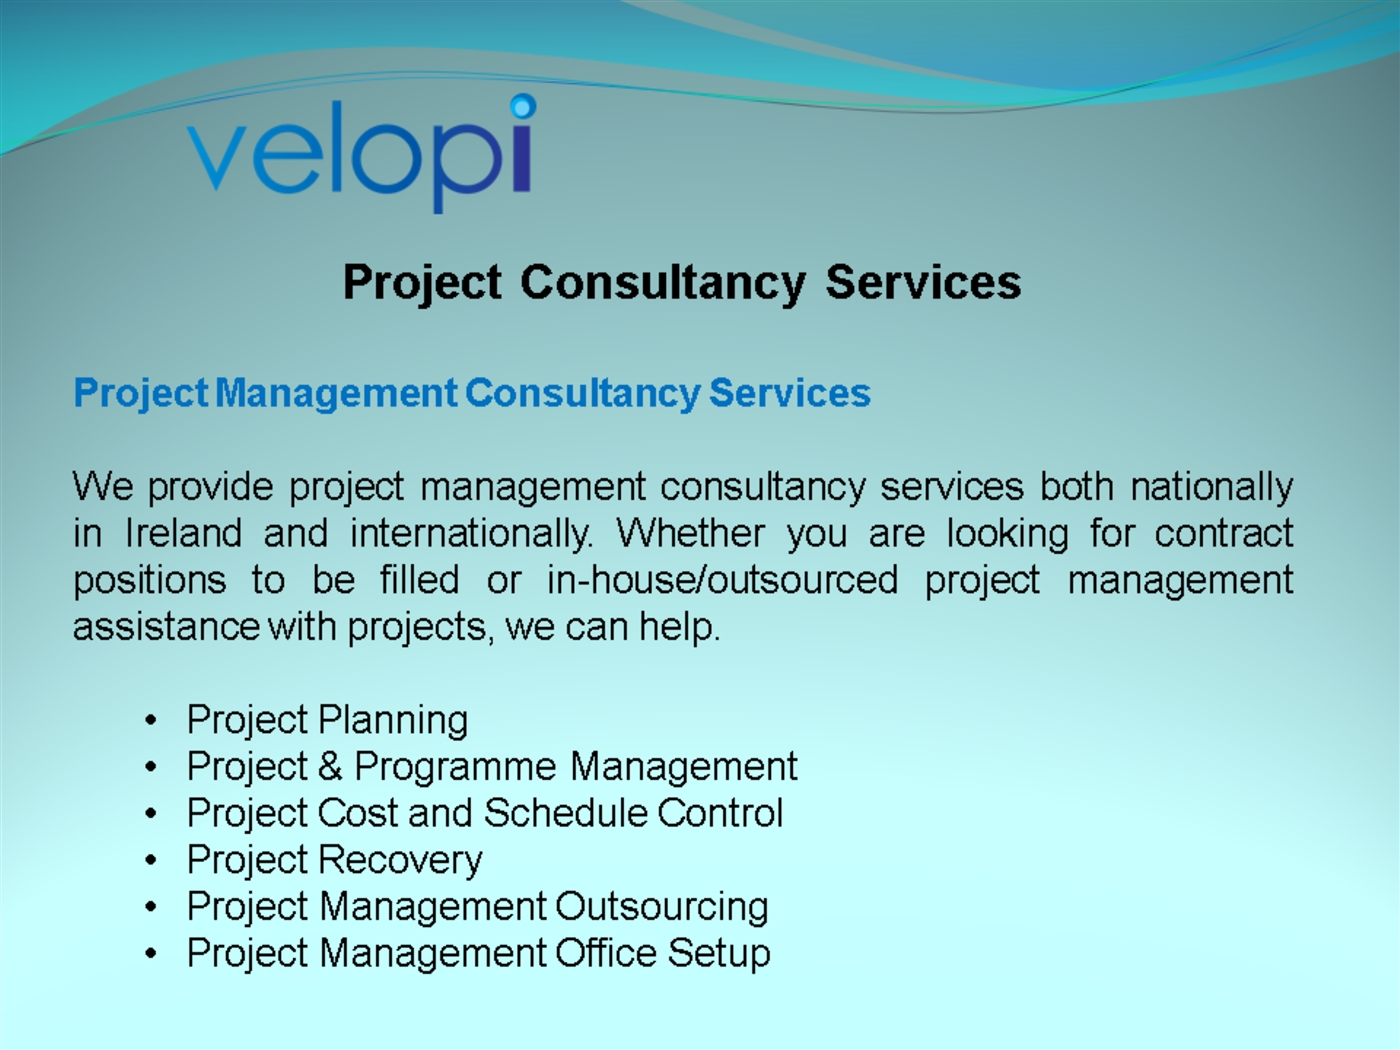 Project Management Consultancy Services Powerpoint Presentation Ppt